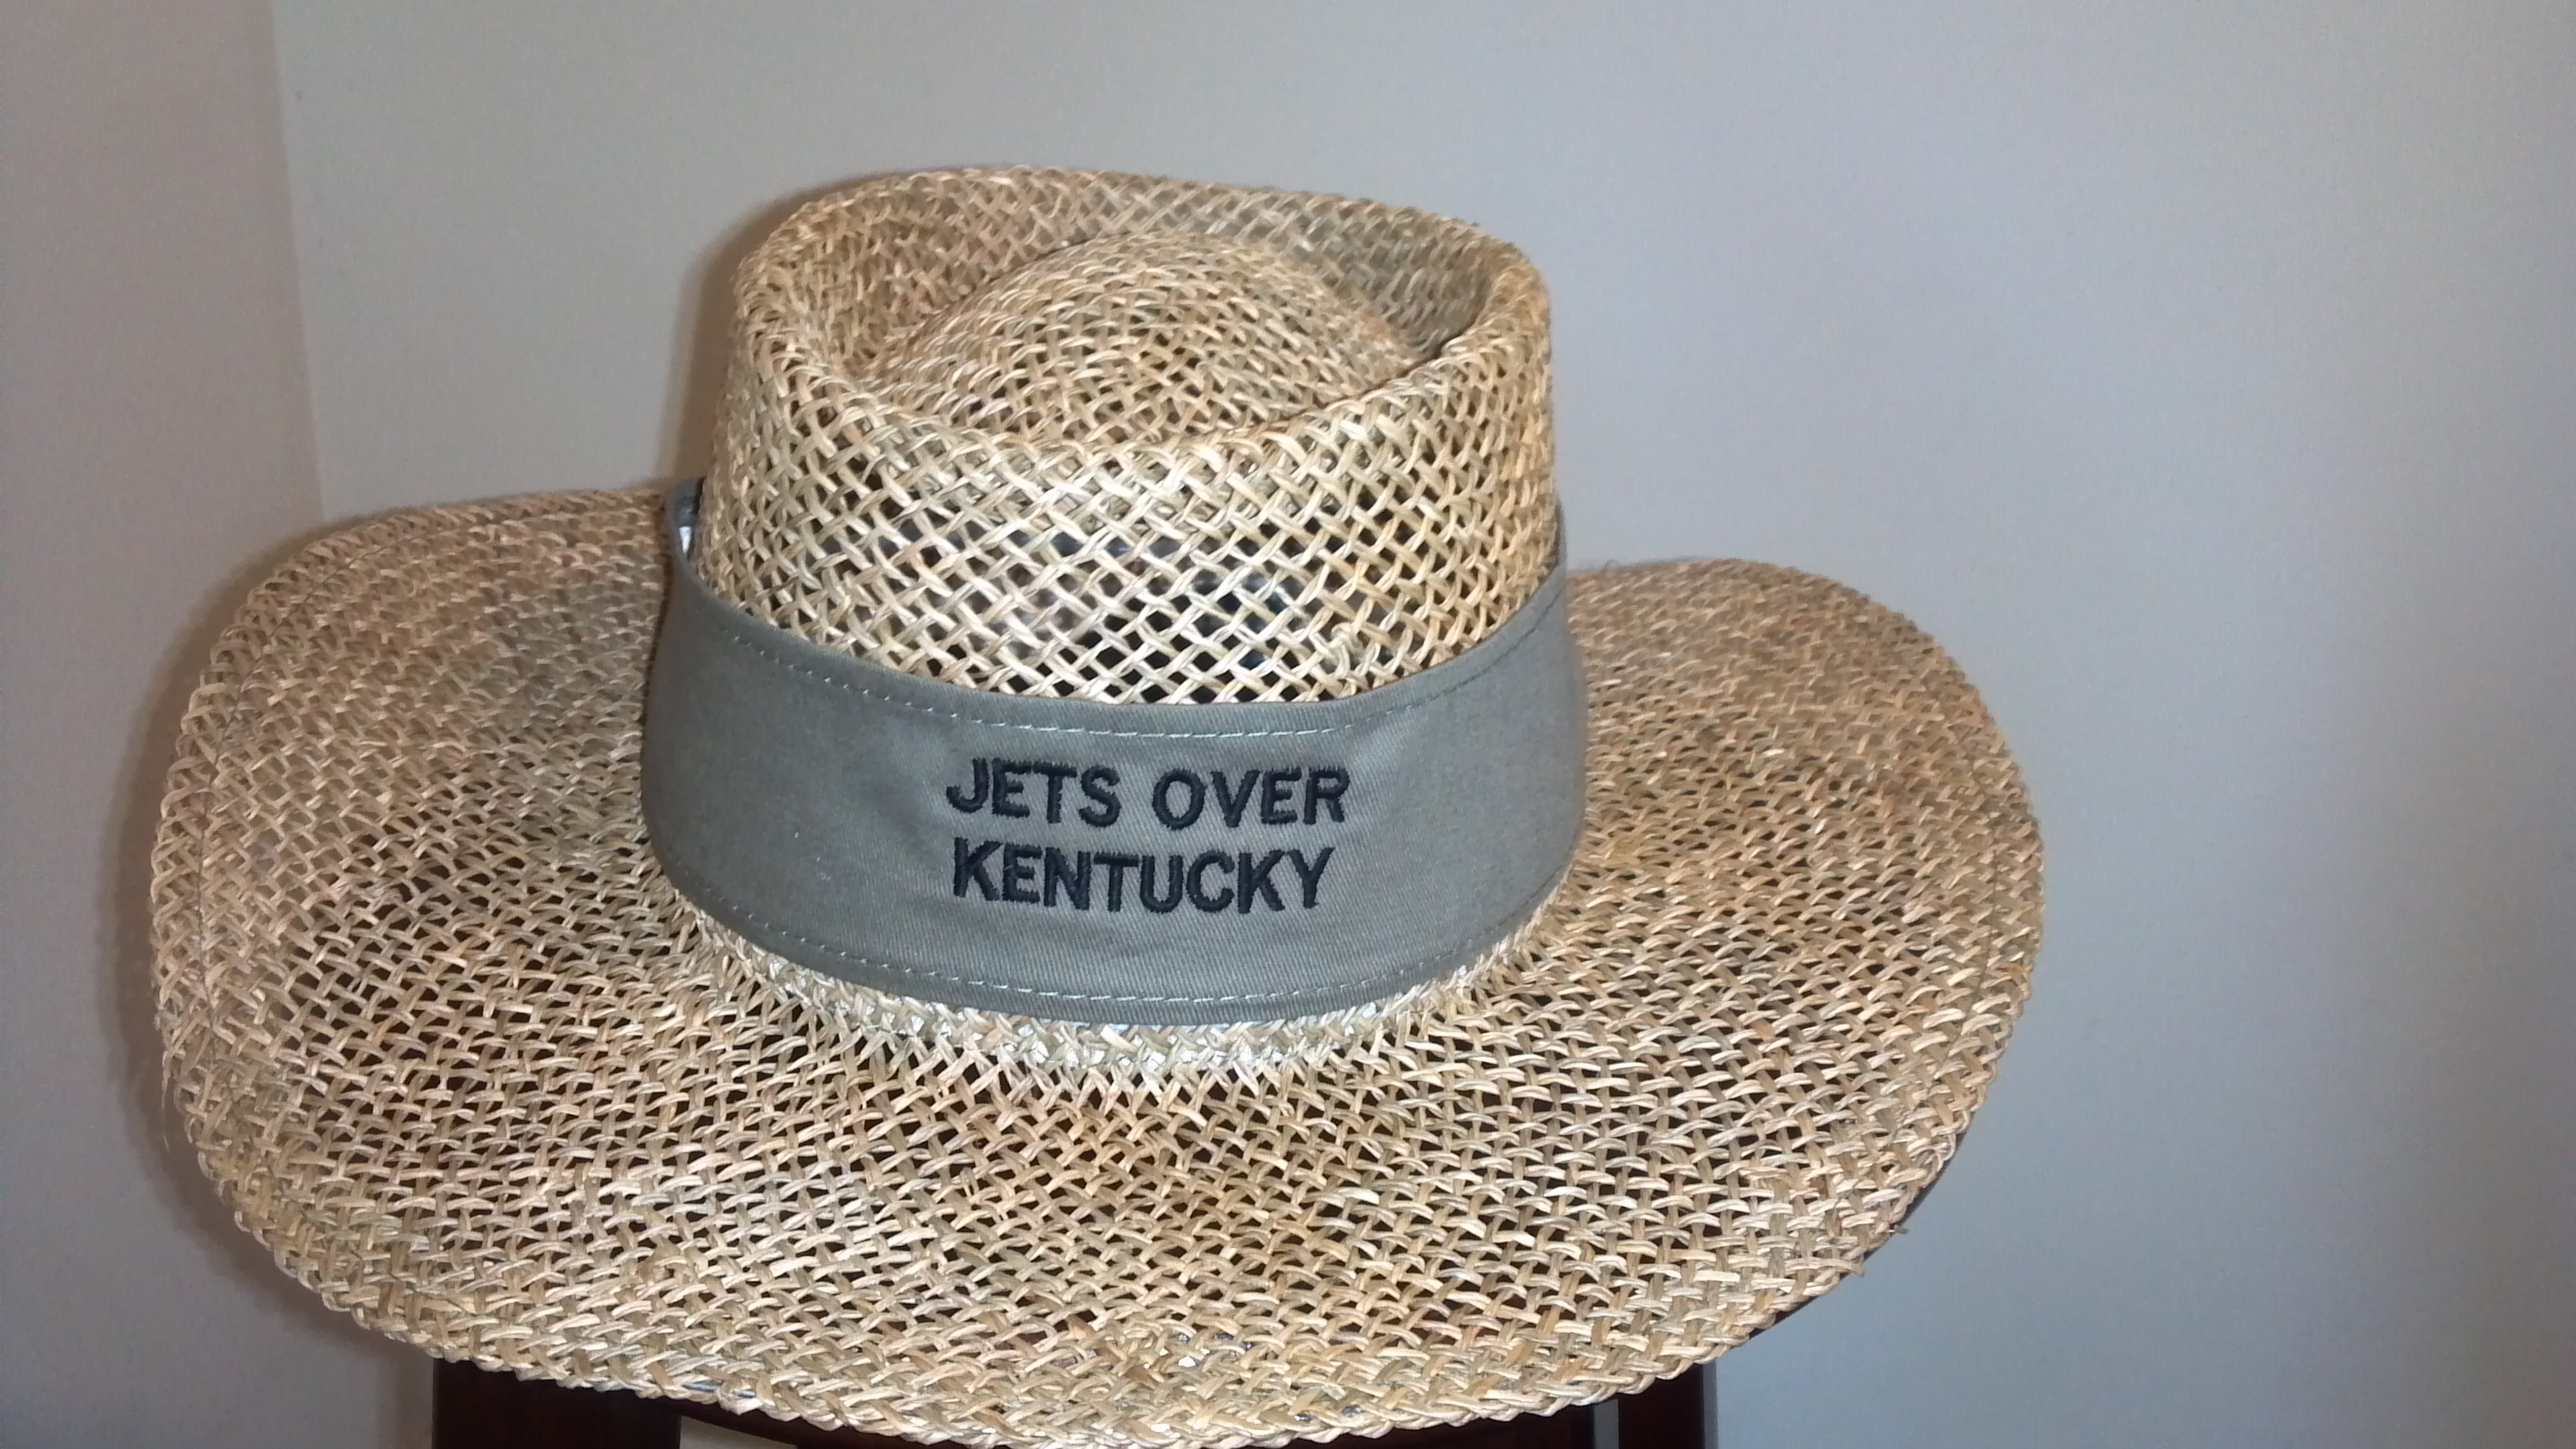 Click image for larger version  Name:Hat Picture 2.jpg Views:47 Size:1.35 MB ID:2003634